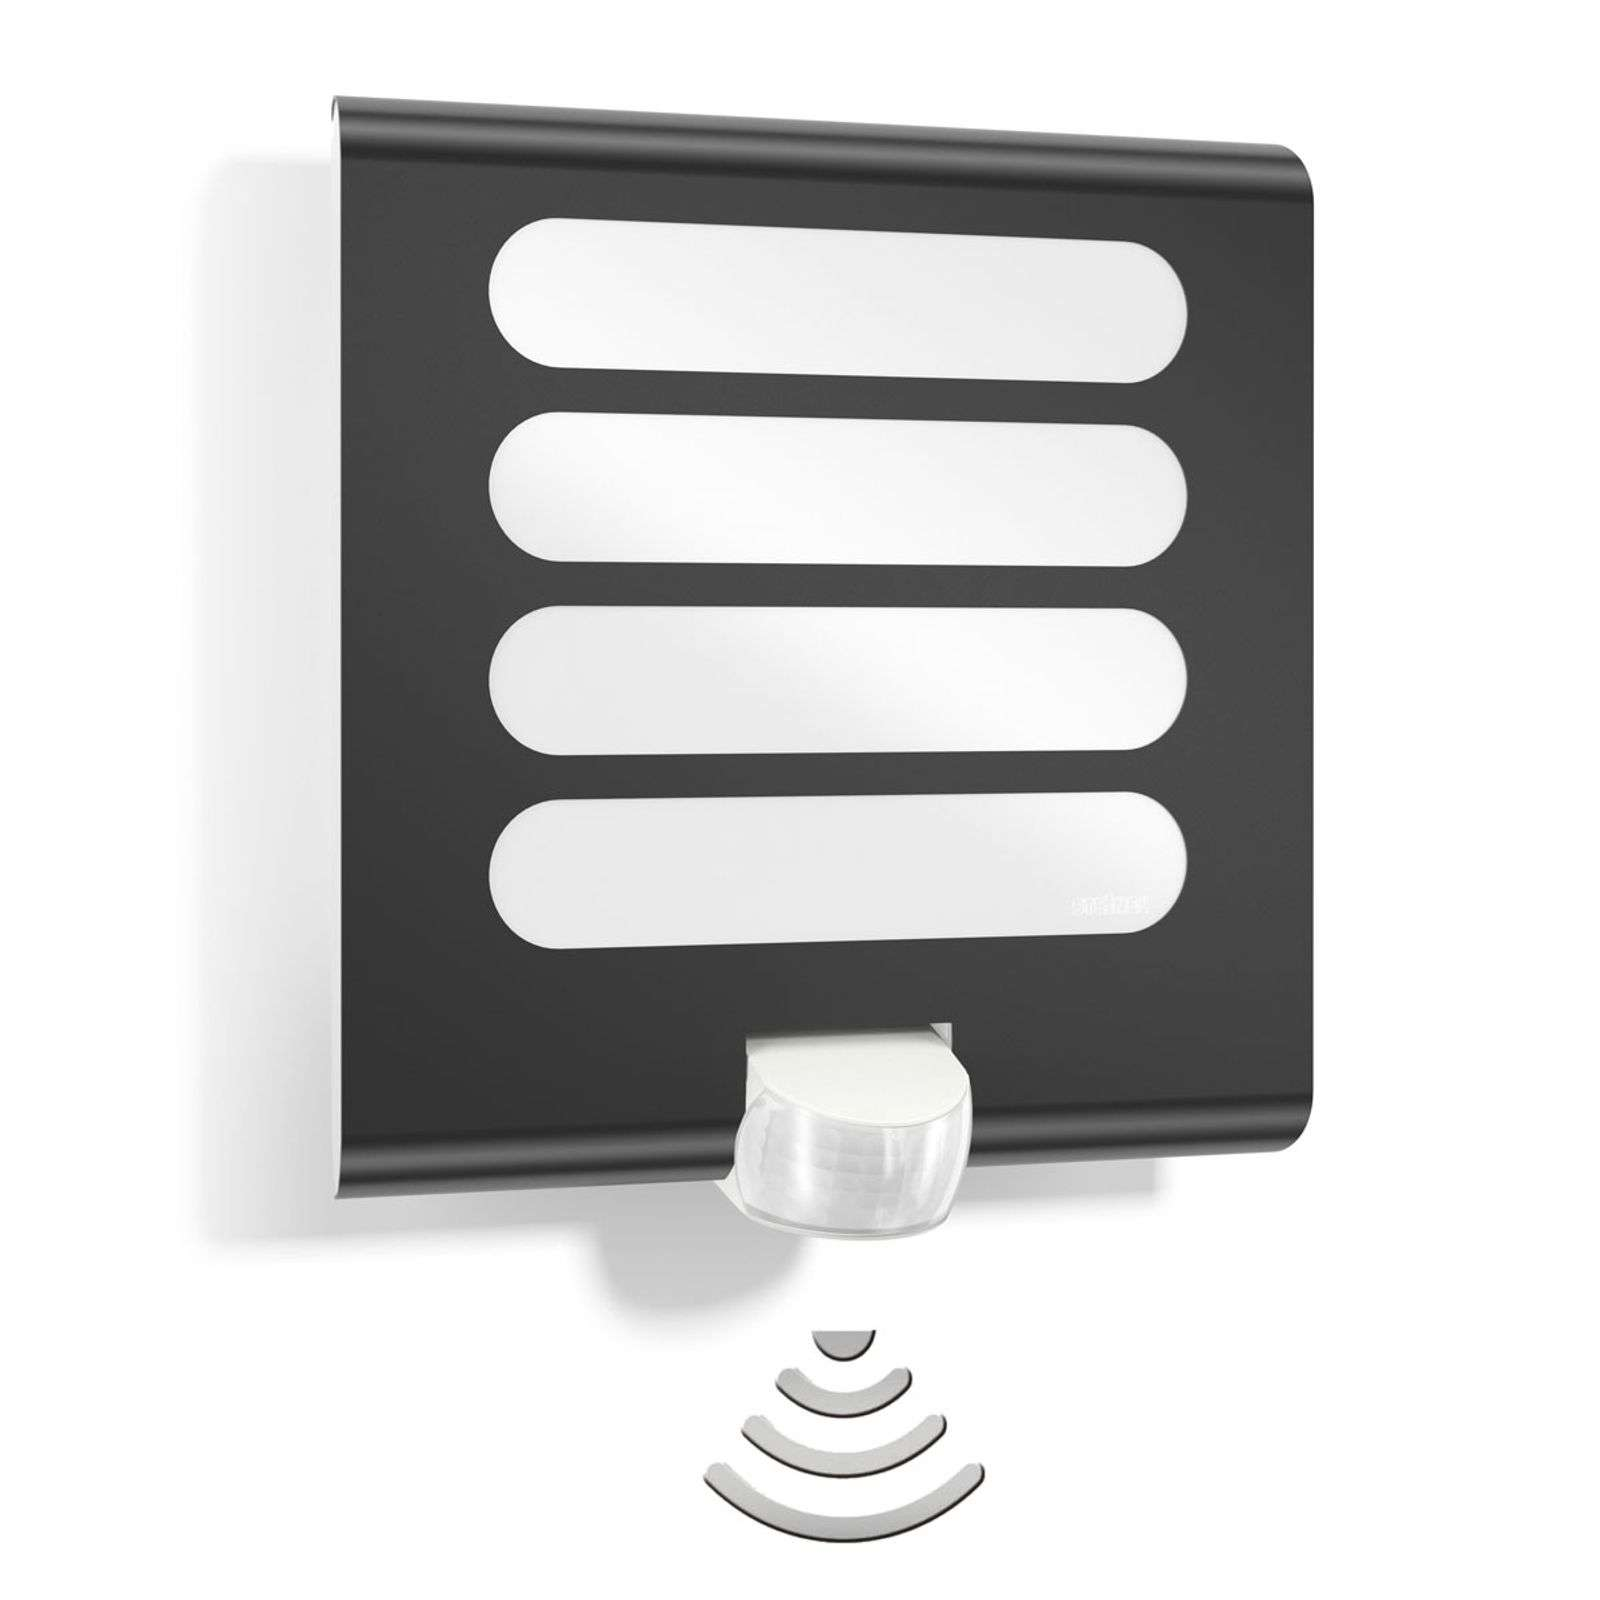 Lámpara de pared LED L224 con sensor, antracita